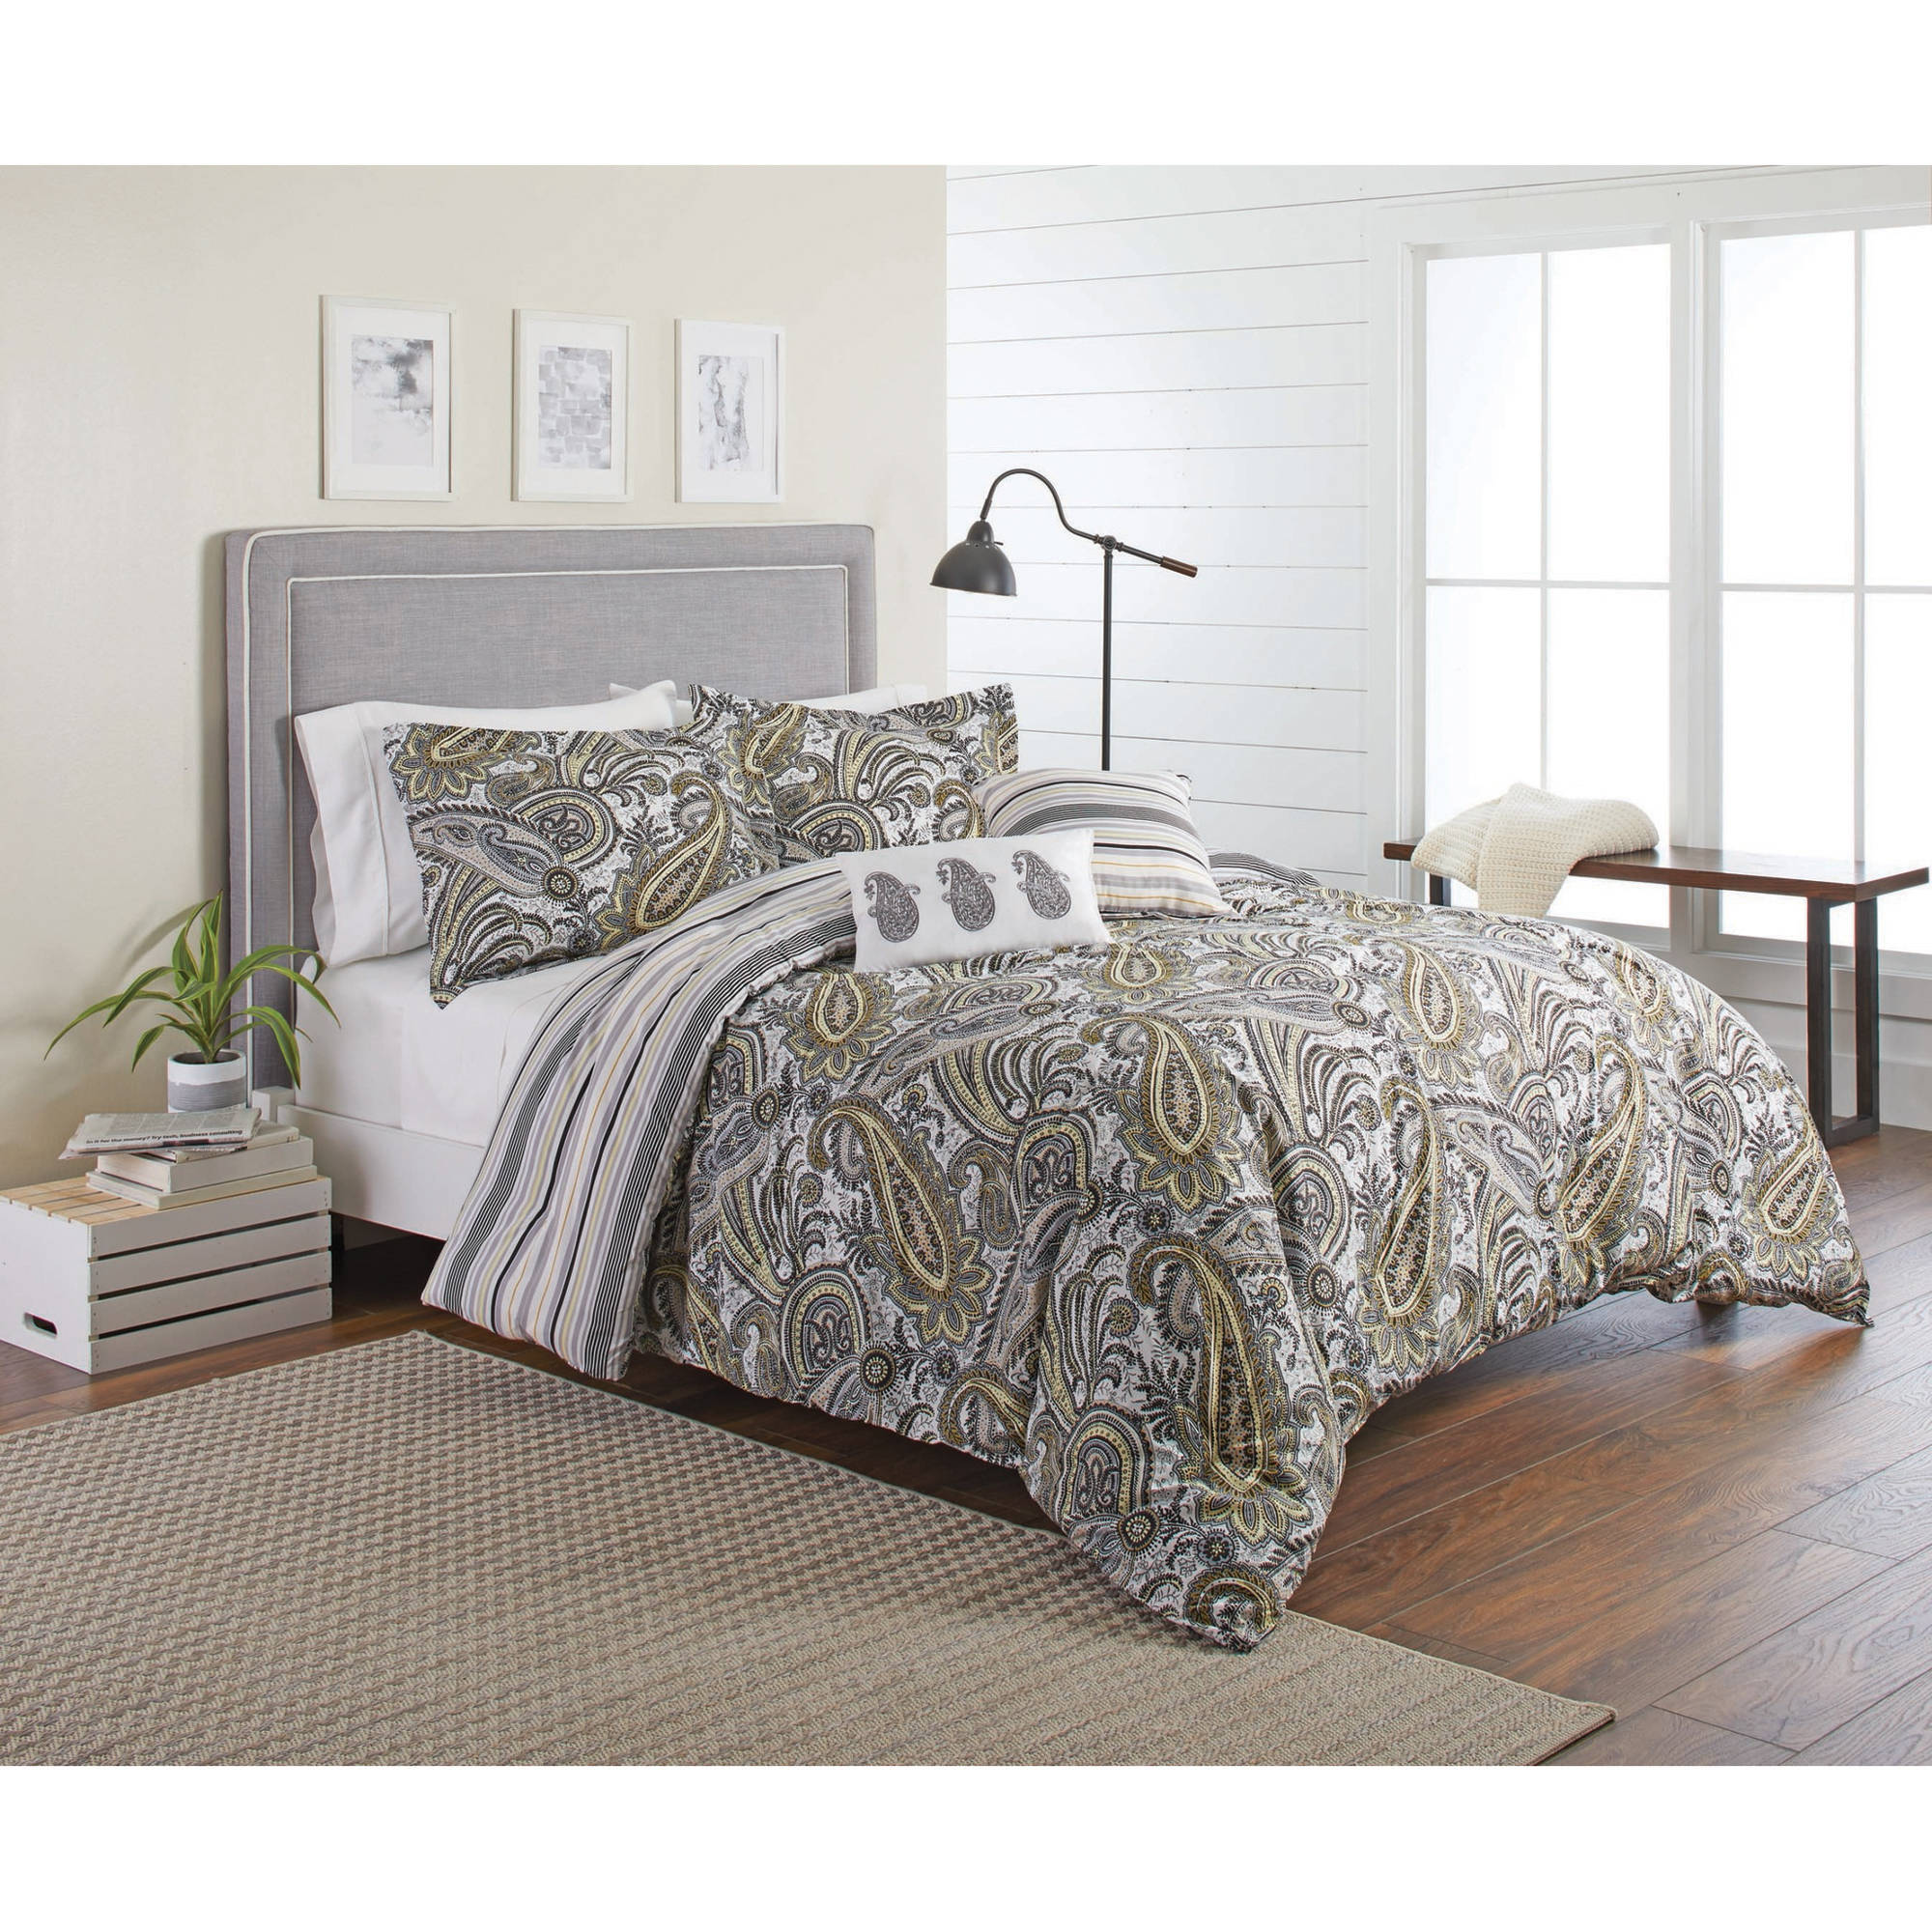 Better Homes and Gardens Black and Gold Paisley 5-Piece Comforter Set, Full/Queen